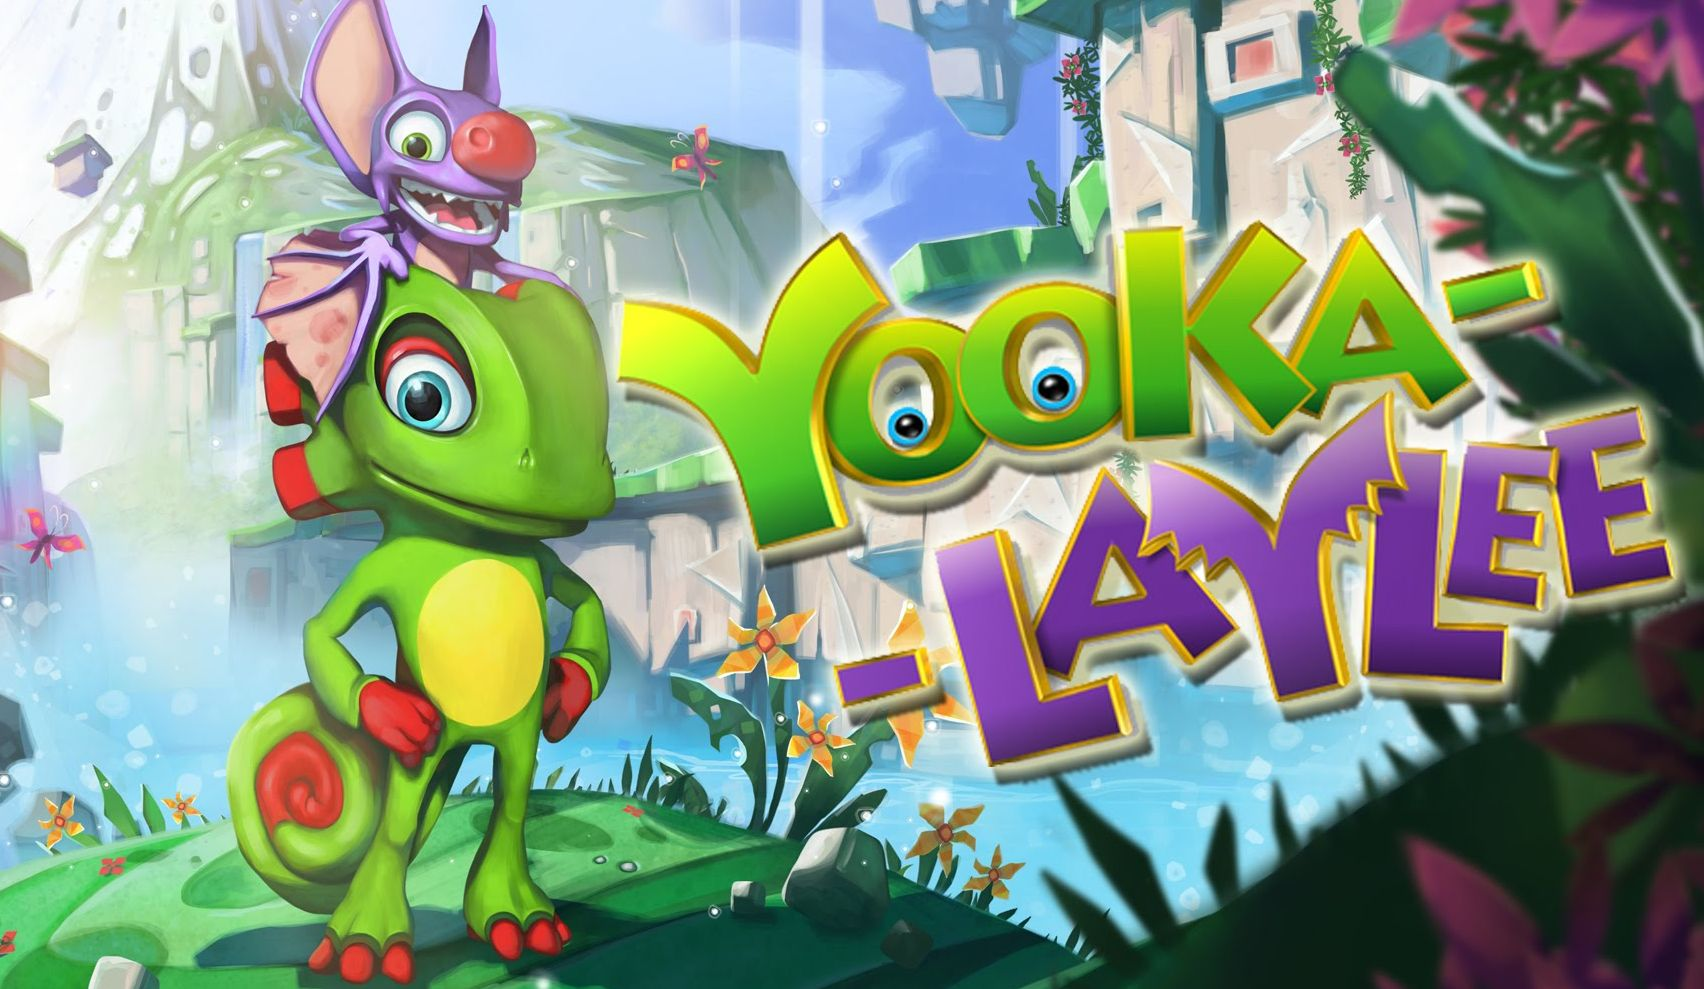 Review game Yooka-Laylee: entertainment for everyone